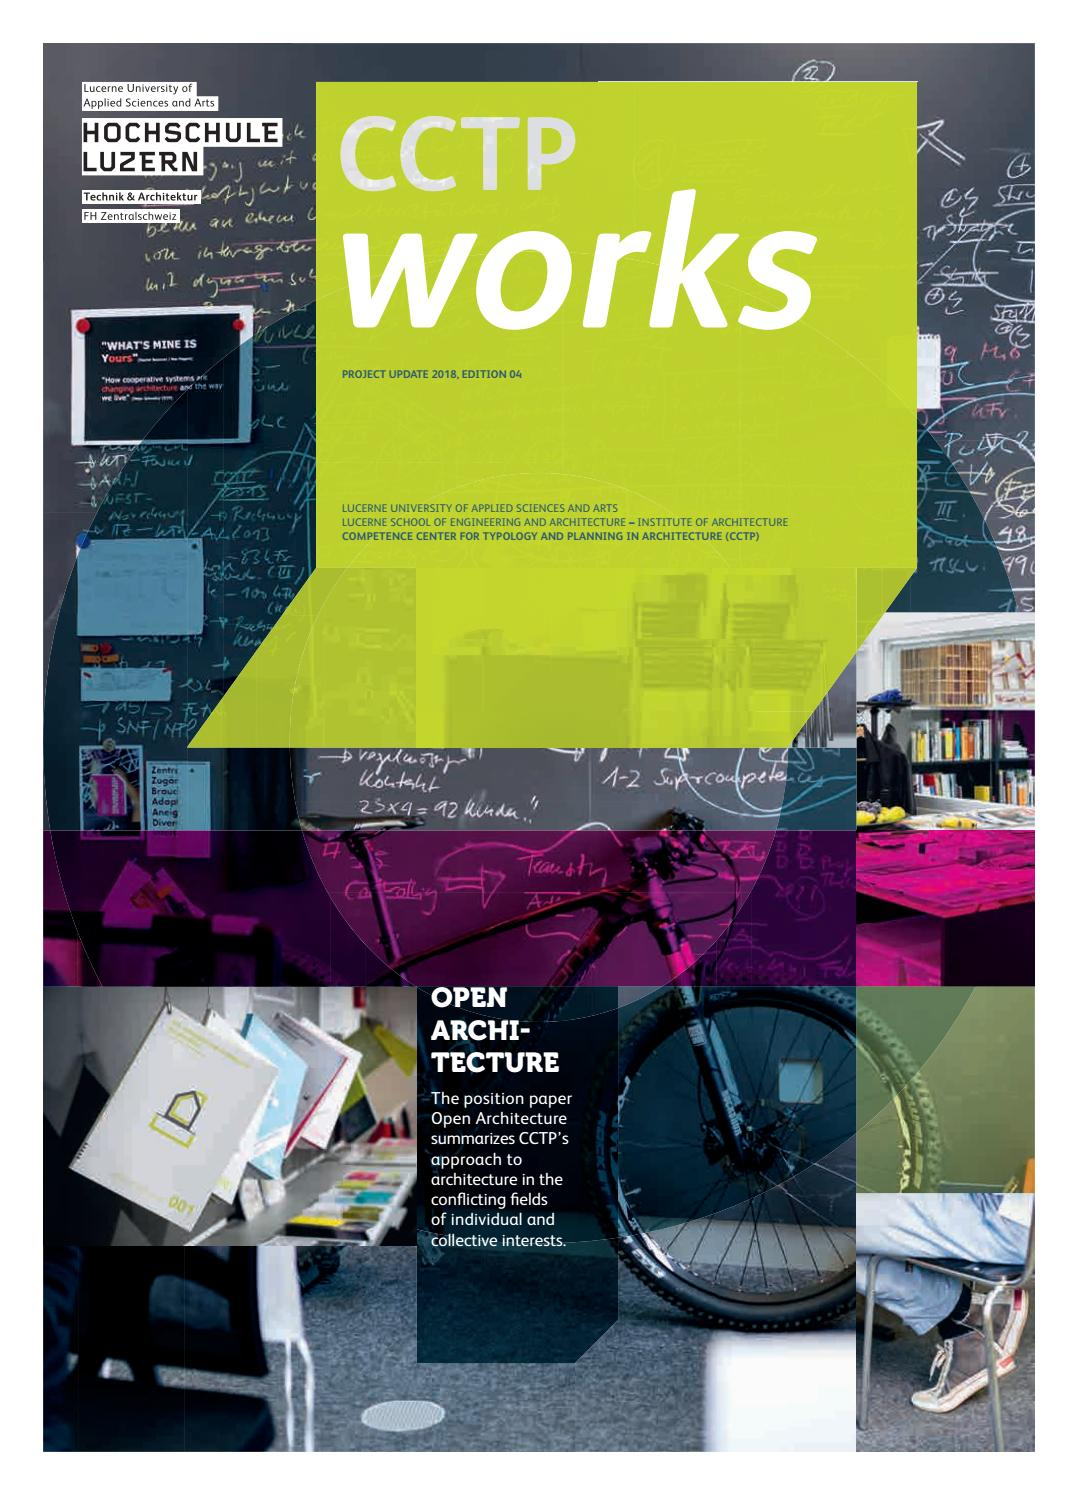 Estrichboden Kosten Cctp Works English By Hochschule Luzern Issuu